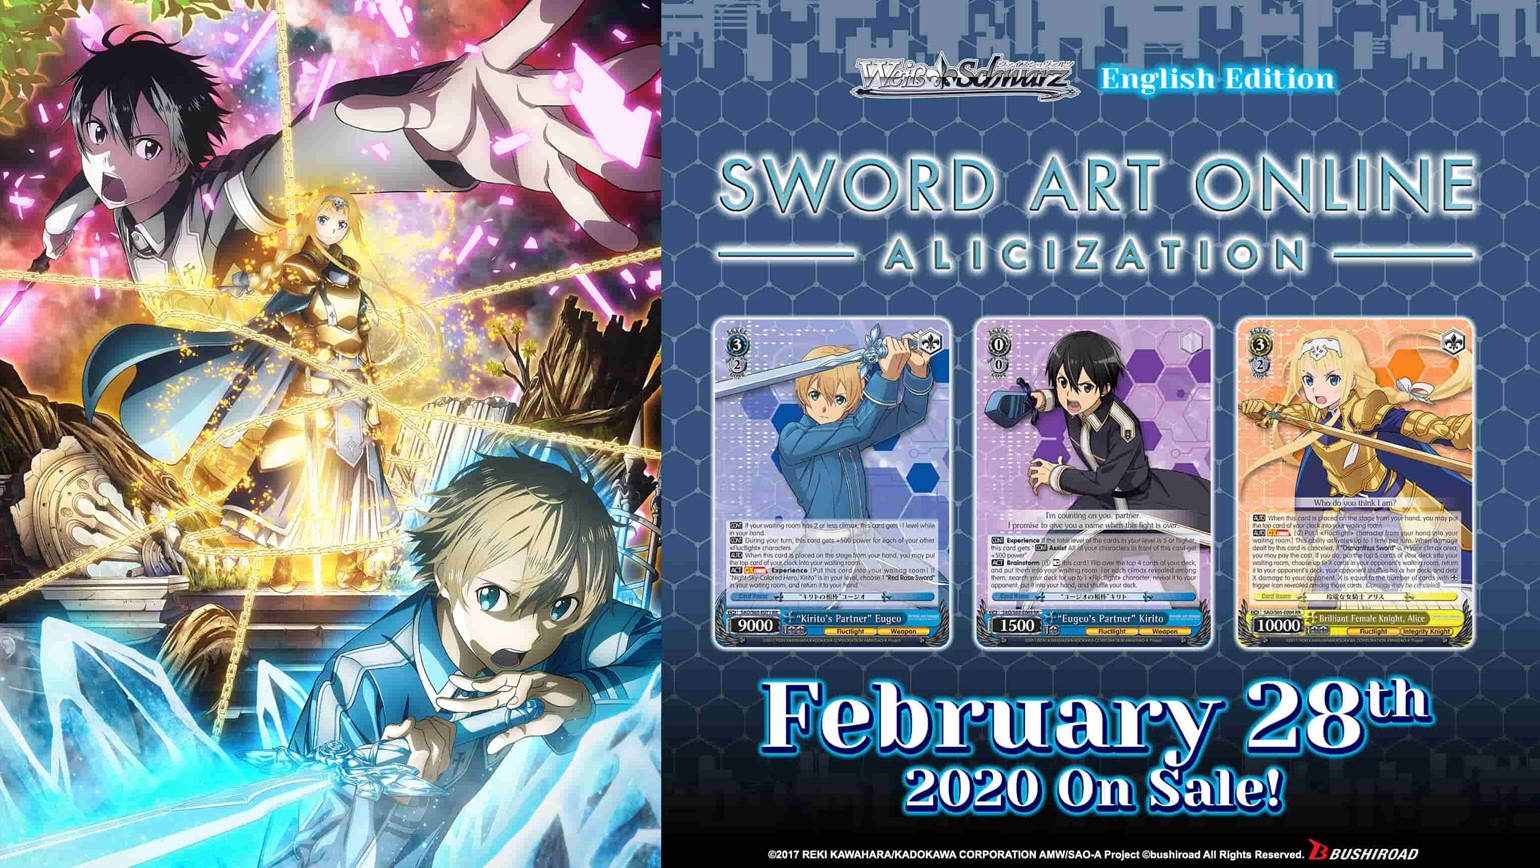 Sword Art Online -Alicization- Coming to Weiss Schwarz on February 28th